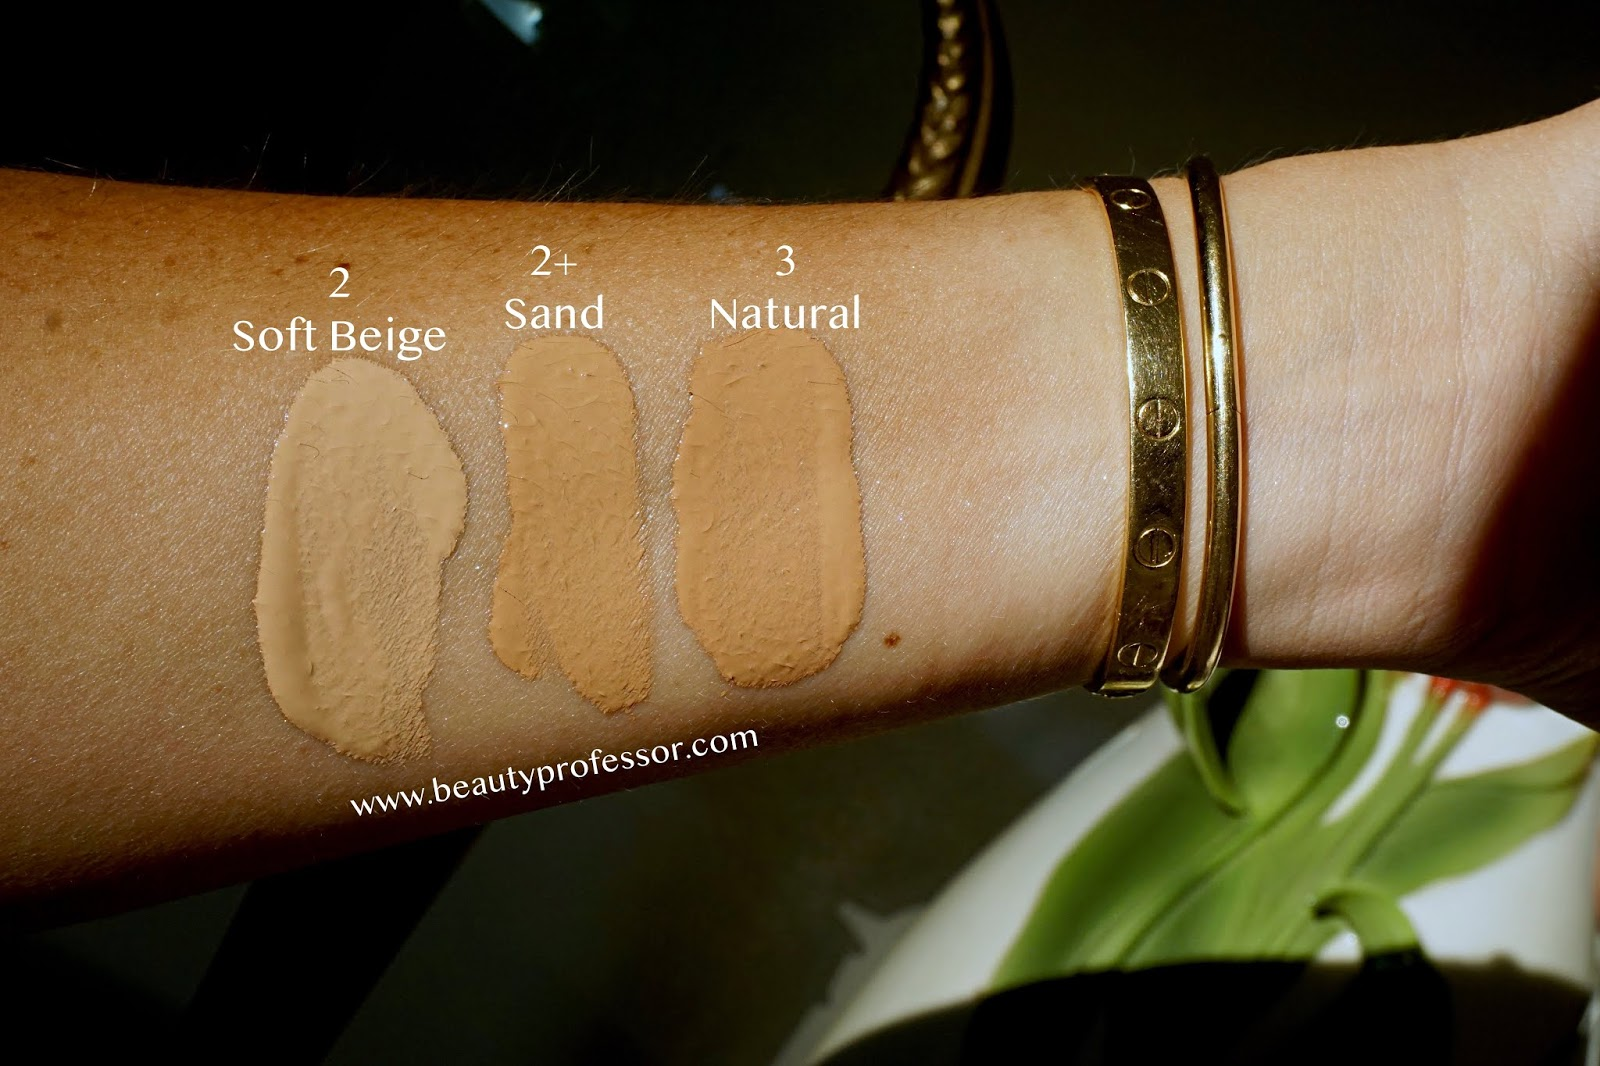 Sisley-Paris Phyto-Teint Ultra Eclat Oil-Free Long Lasting Foundation swatches